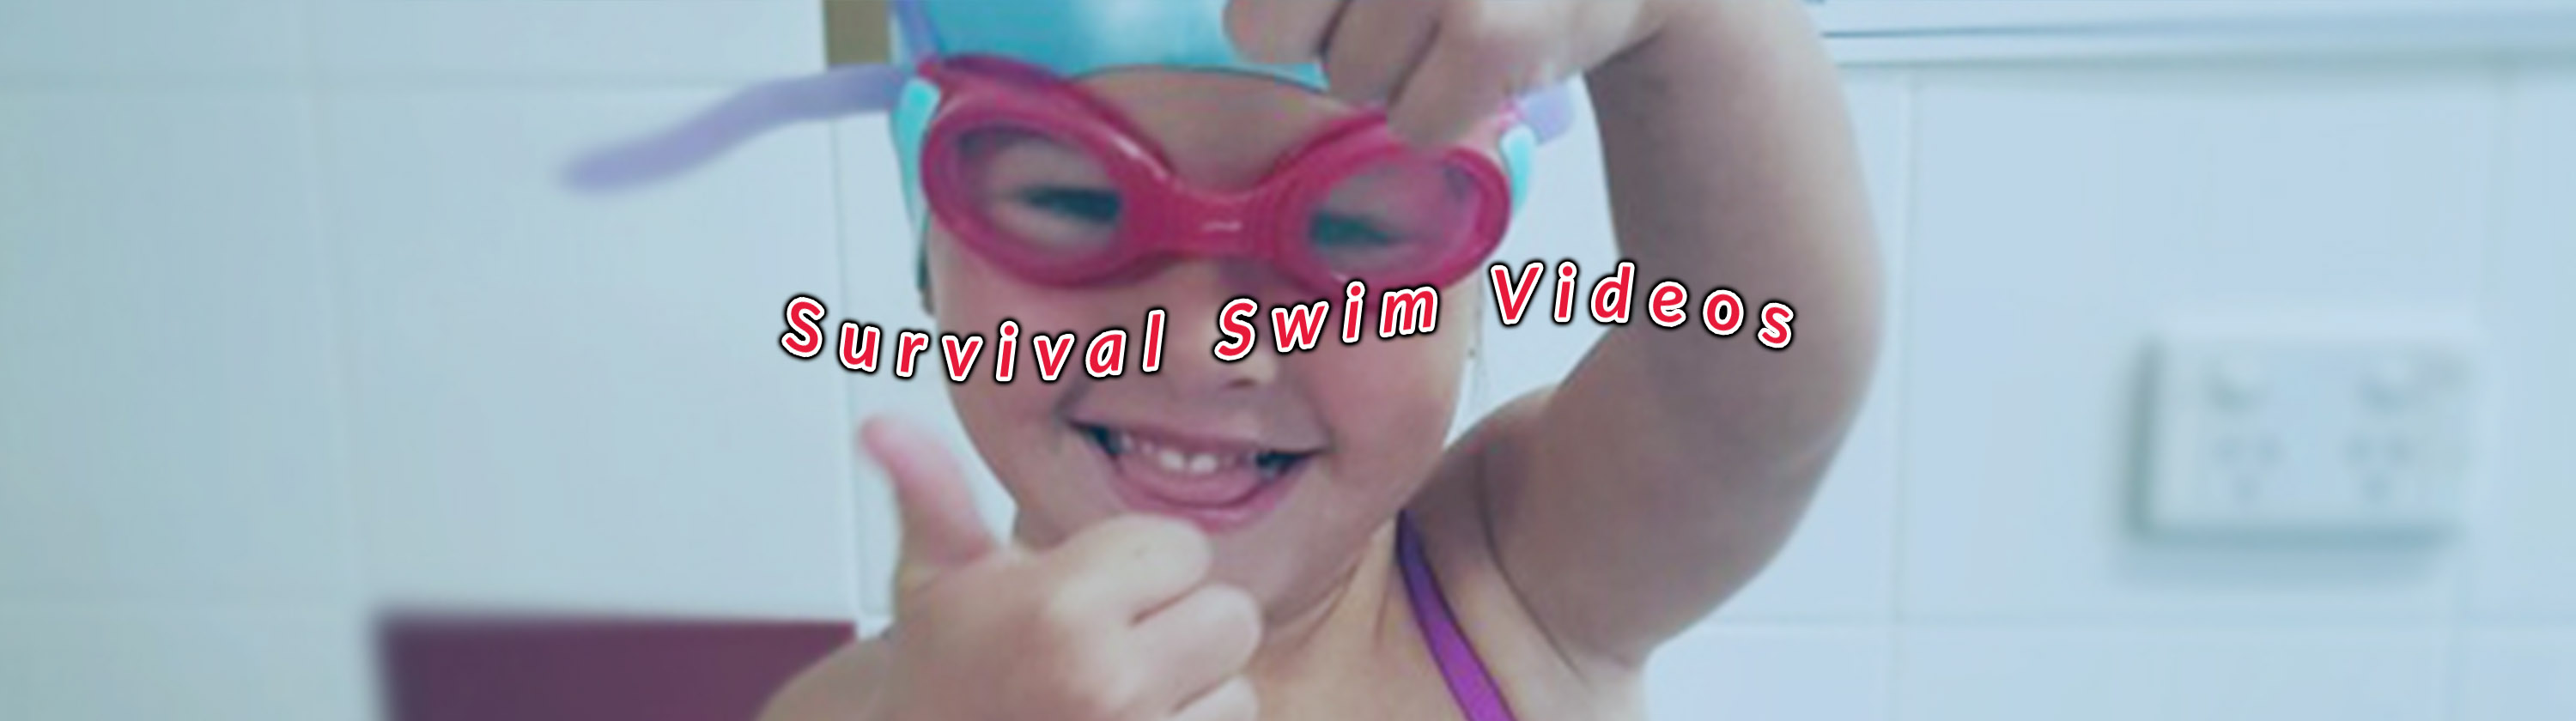 Waterwise_Infant_Aquatics_Survival_Swim_Swimming_Lessons_Perth_Survival_Swim_Videos